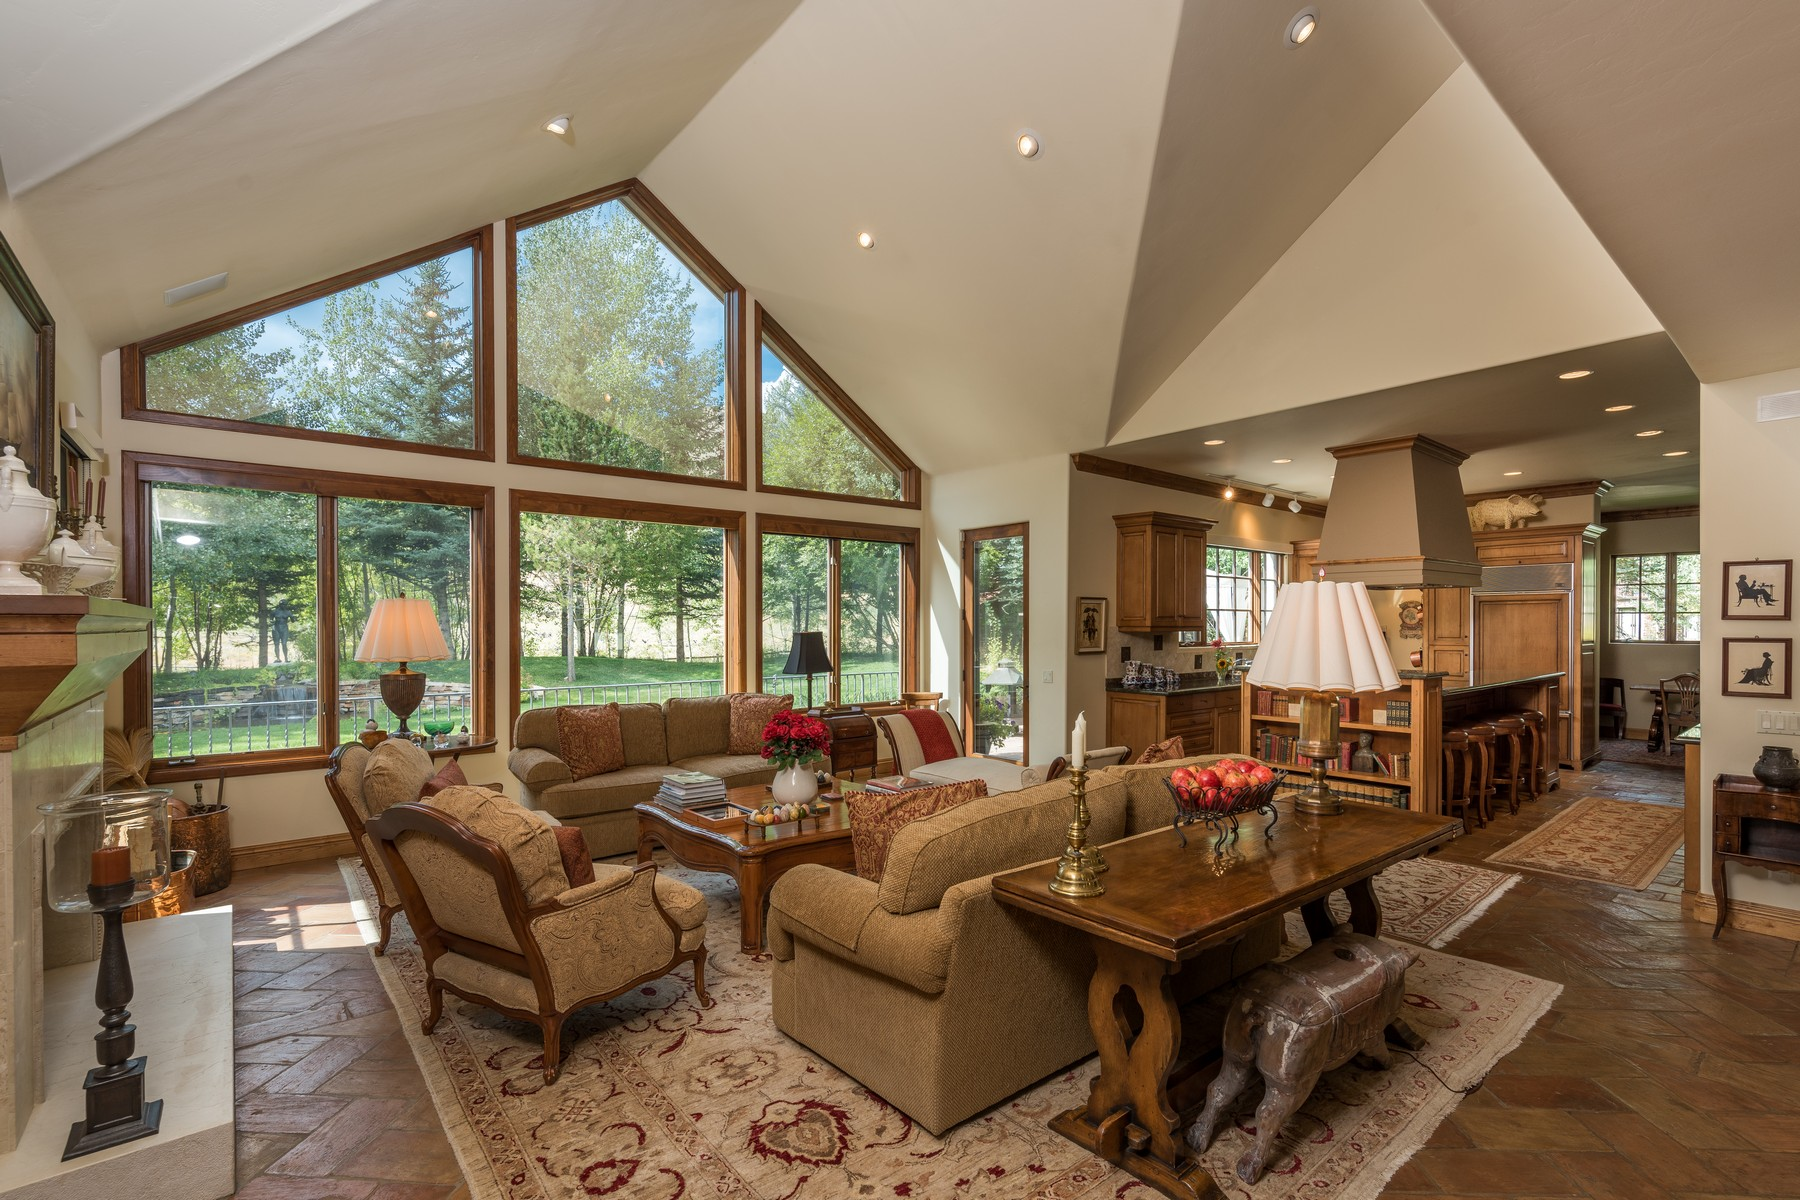 Single Family Home for Sale at Mountain Elegance 1100 W Canyon Run Blvd. Ketchum, Idaho 83340 United States